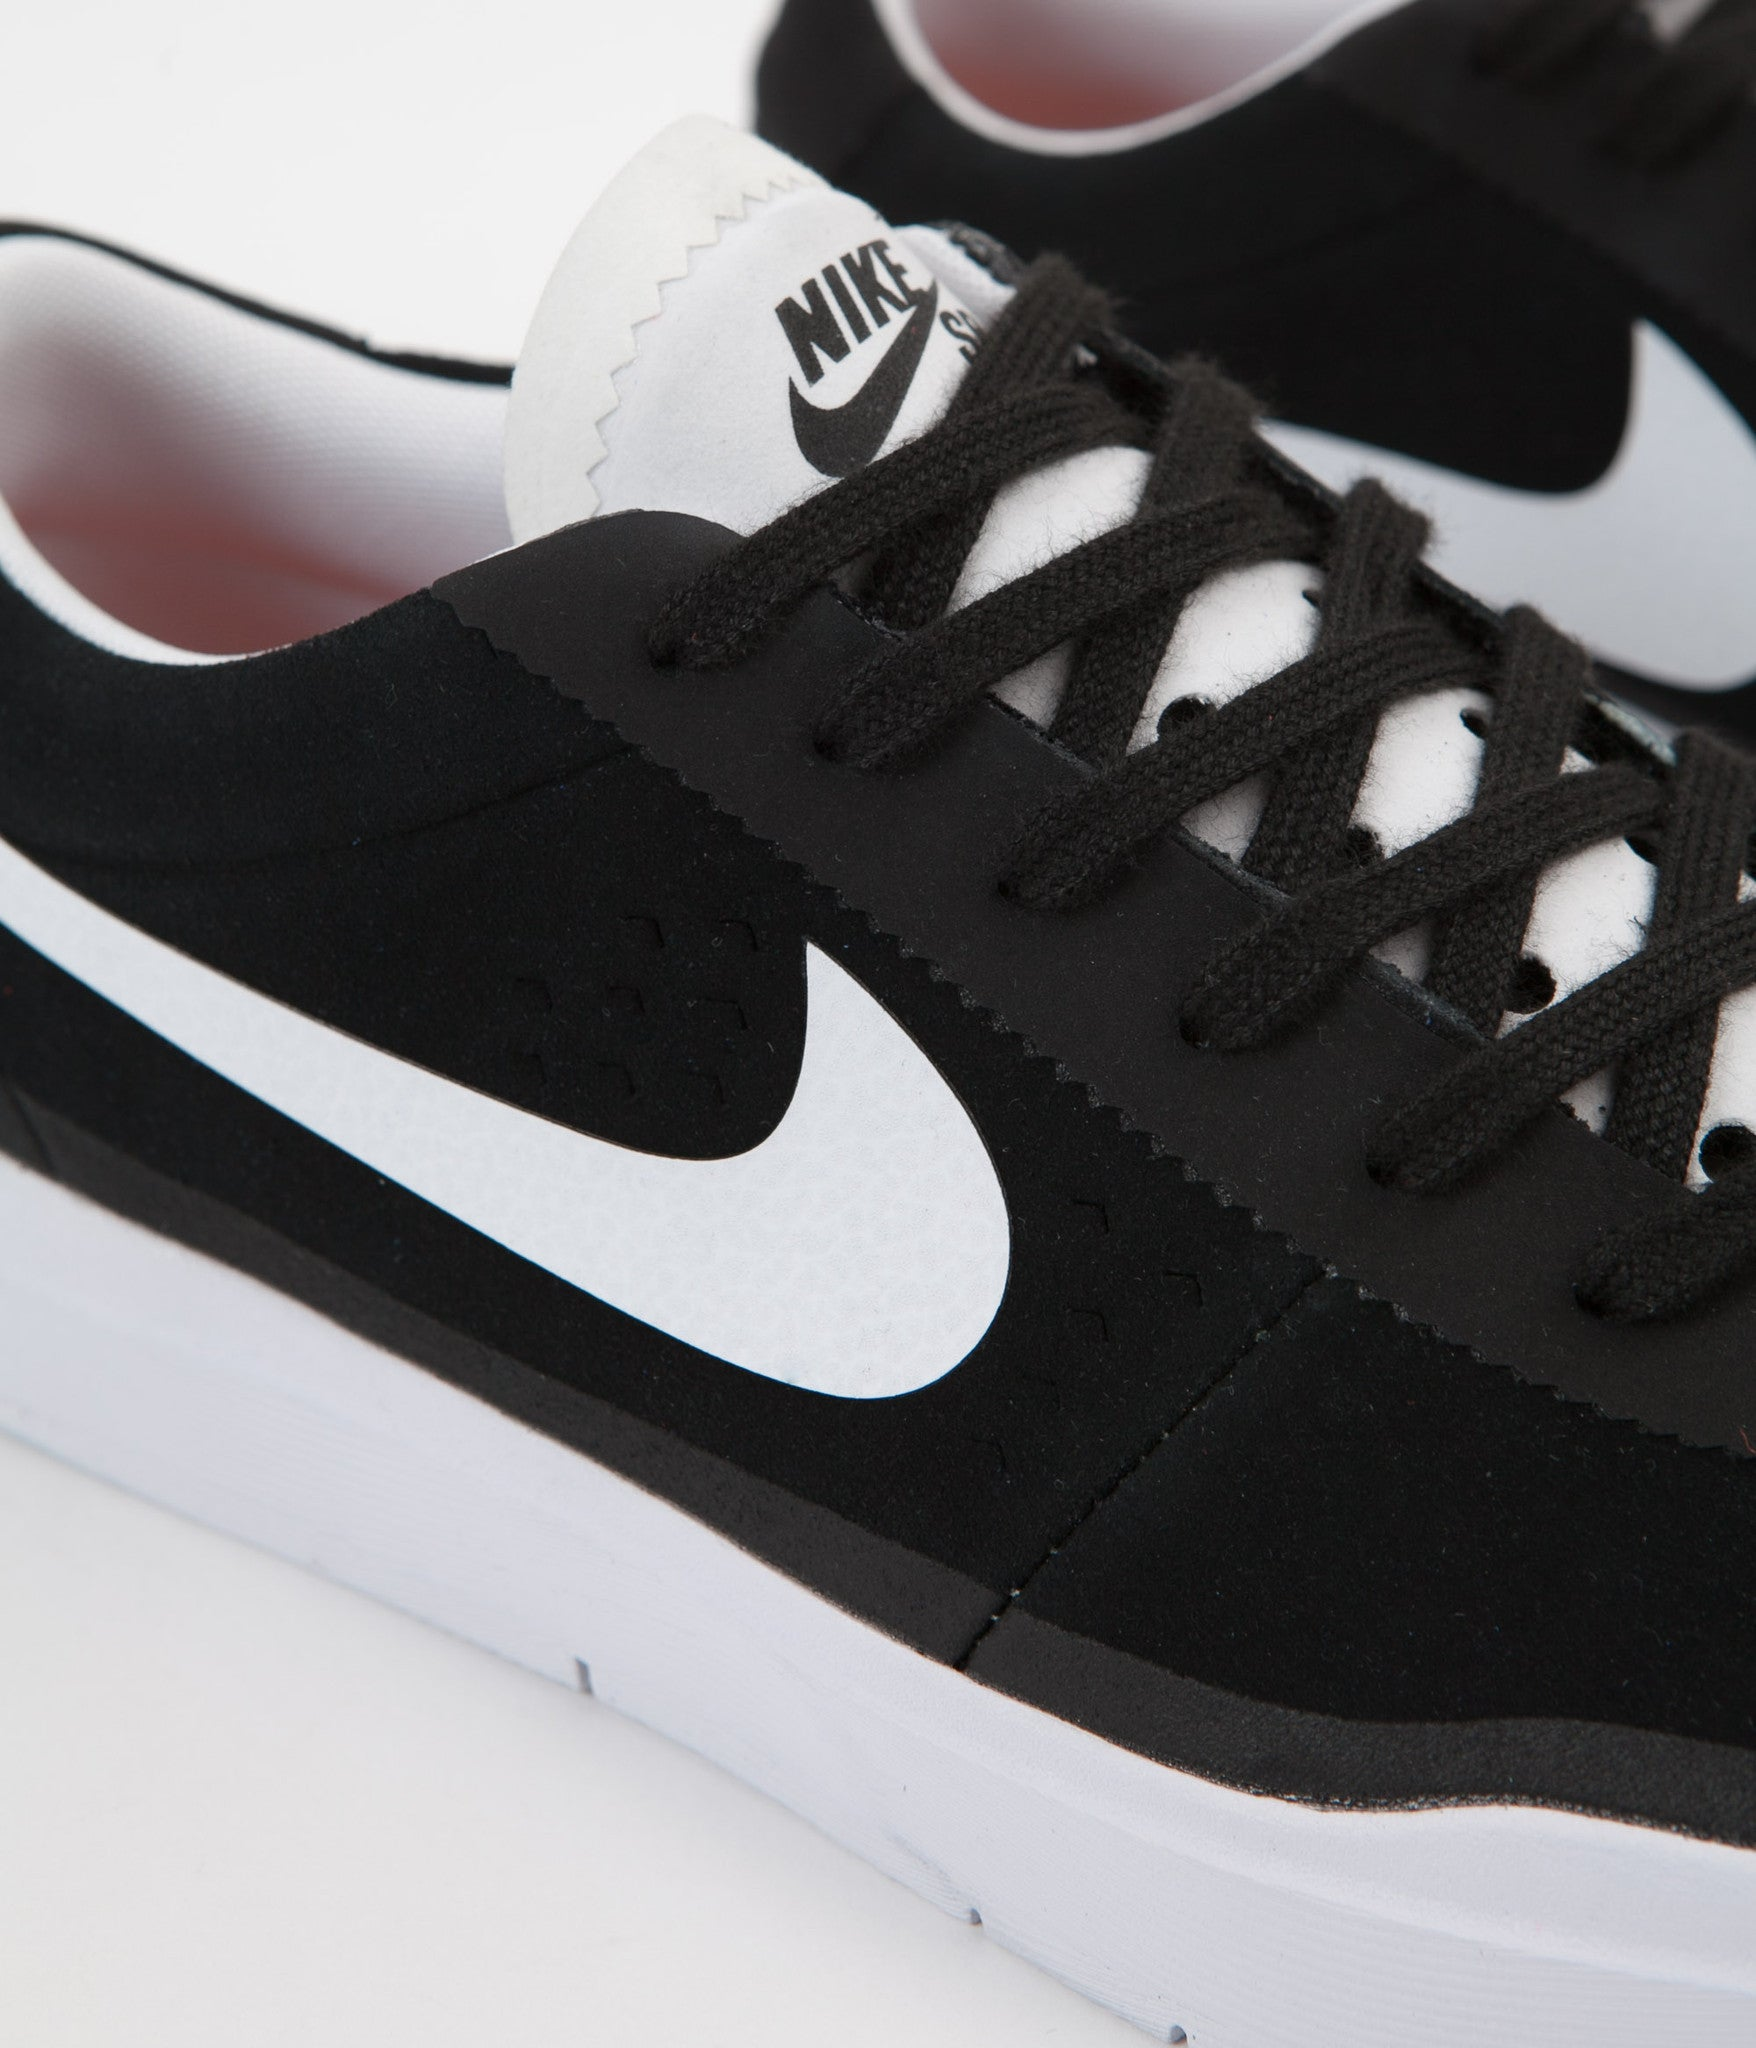 7e67ada7308 ... Nike SB Bruin Hyperfeel Shoes - Black   White - White ...